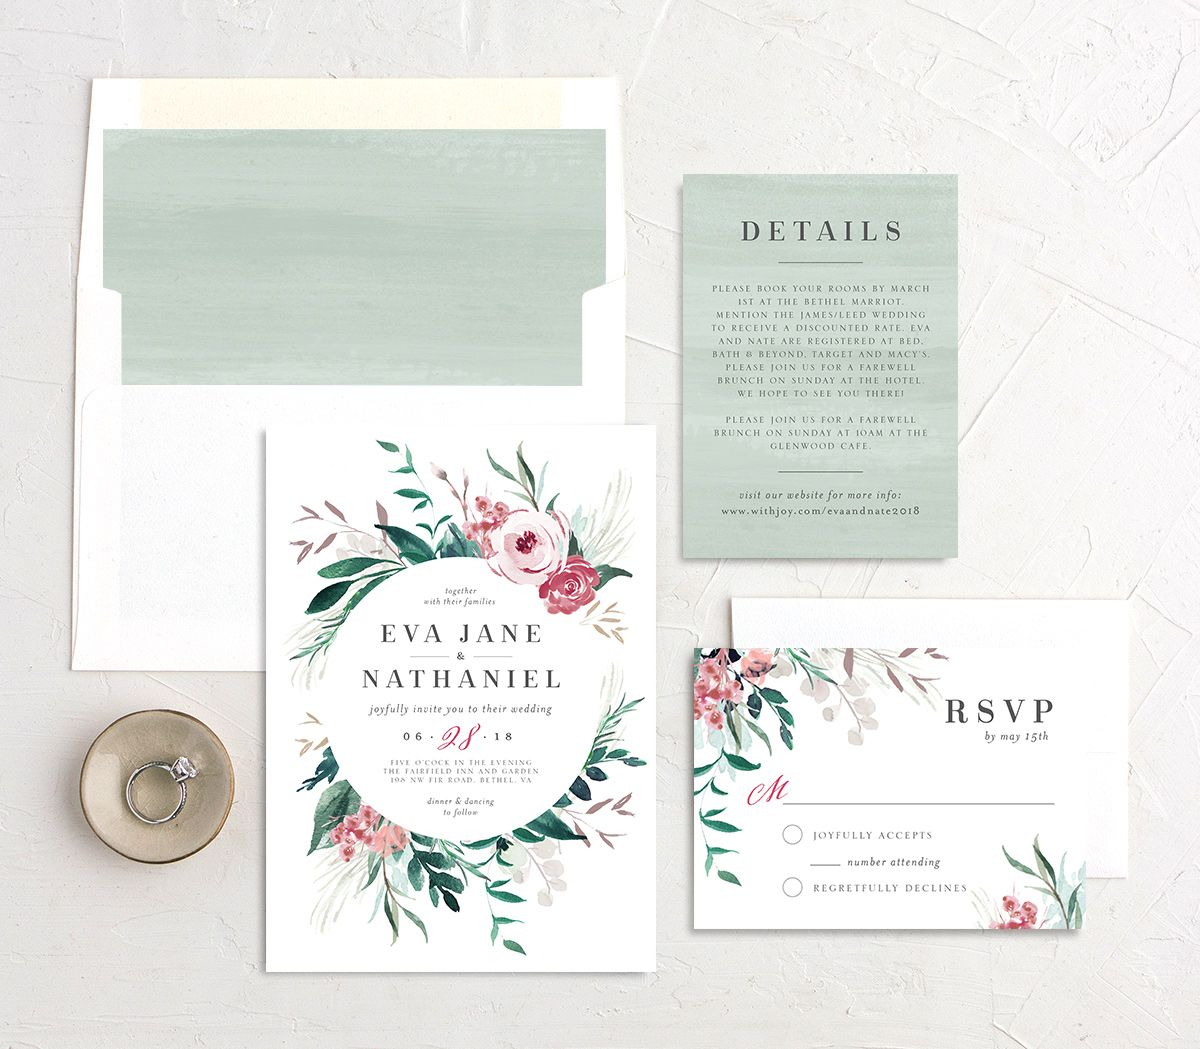 Wild wreath wedding invitation stationery suite in green